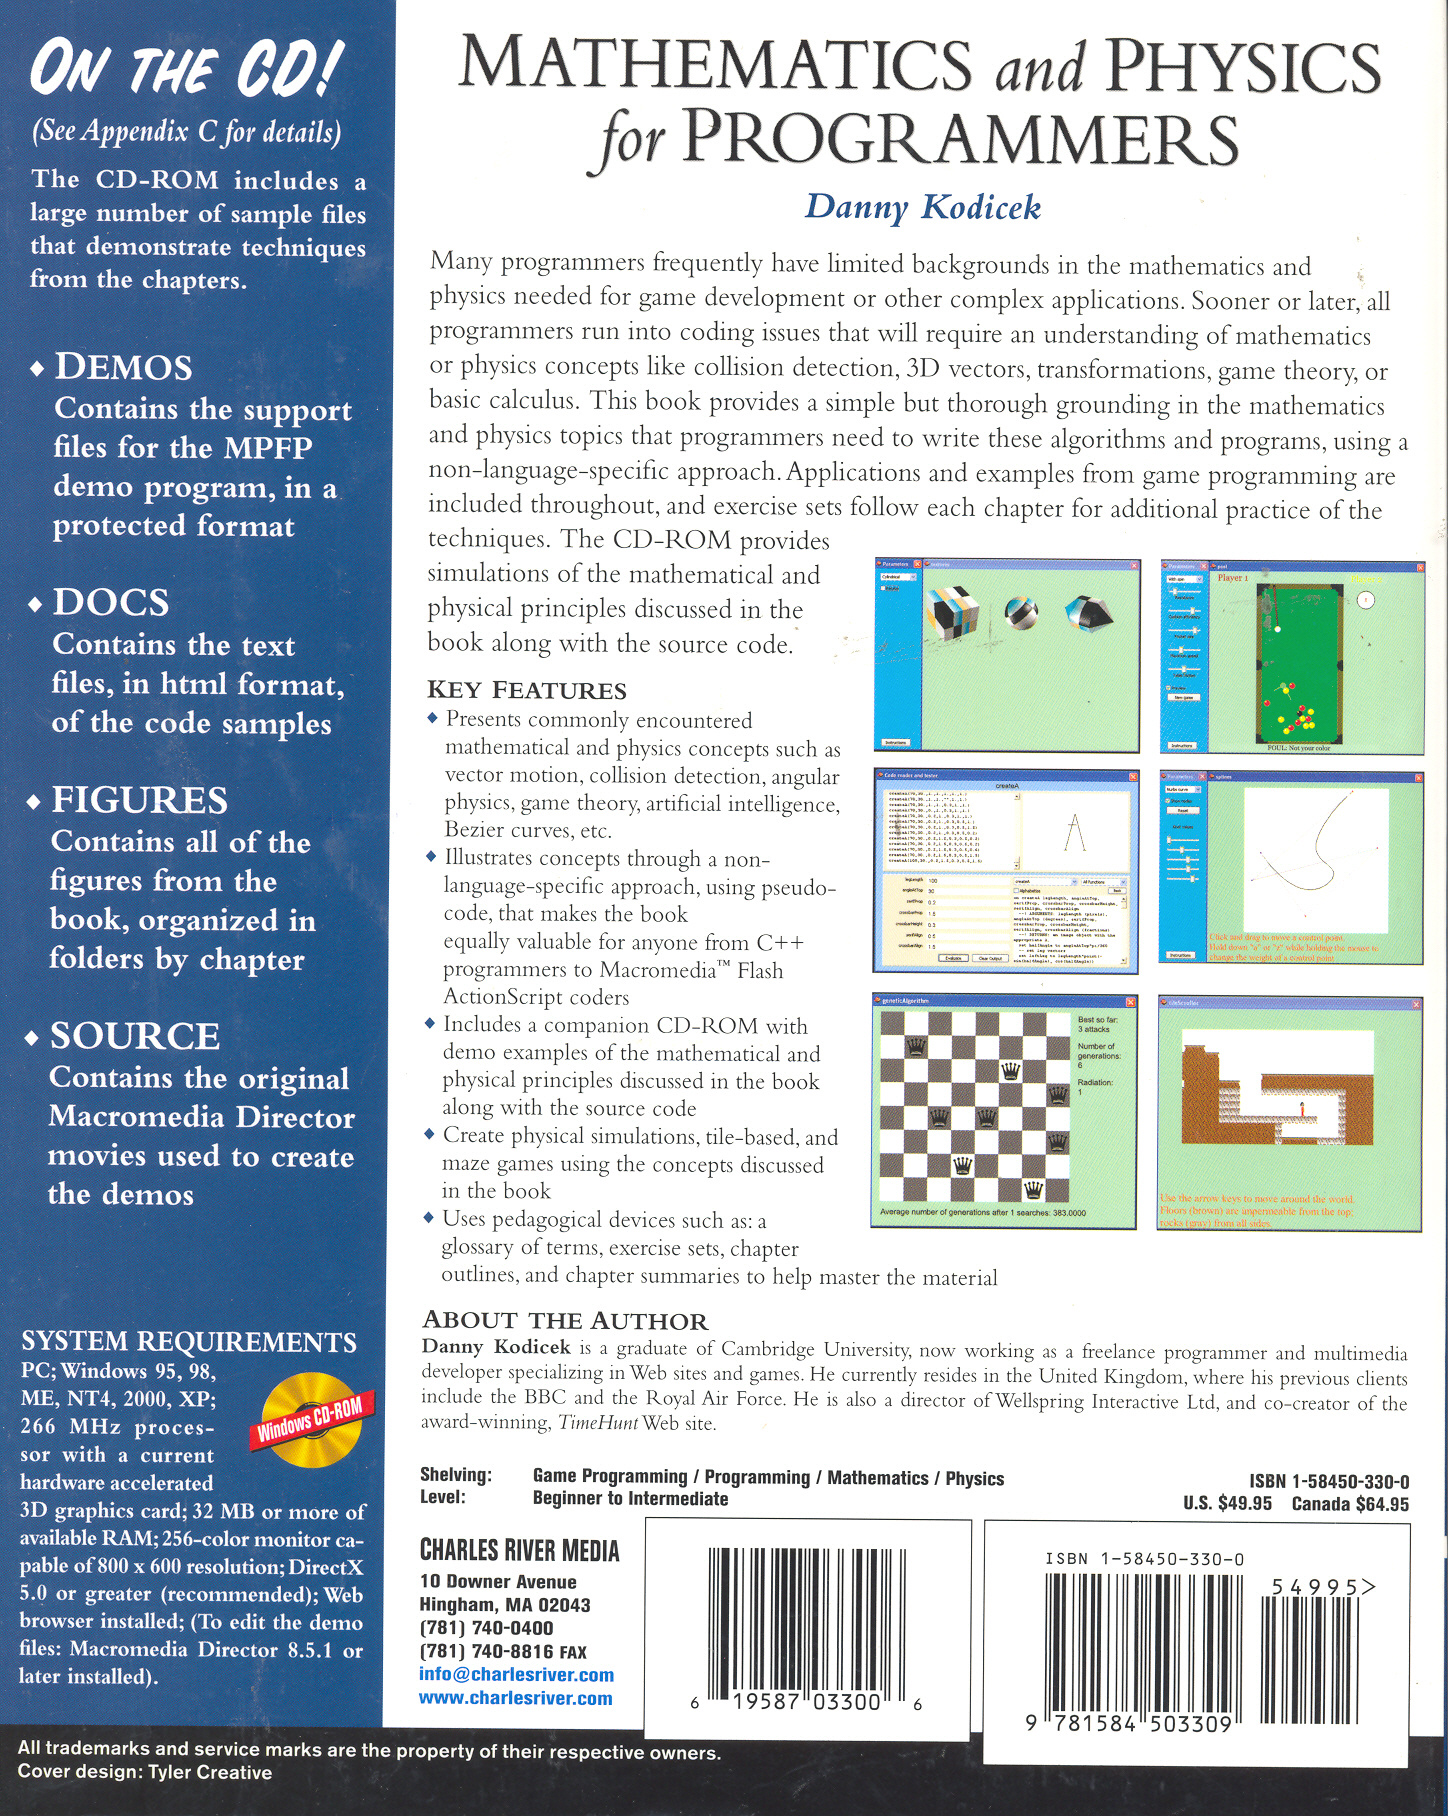 Beginning Math and Physics for Game Programmers 9474218 - salonurody ...